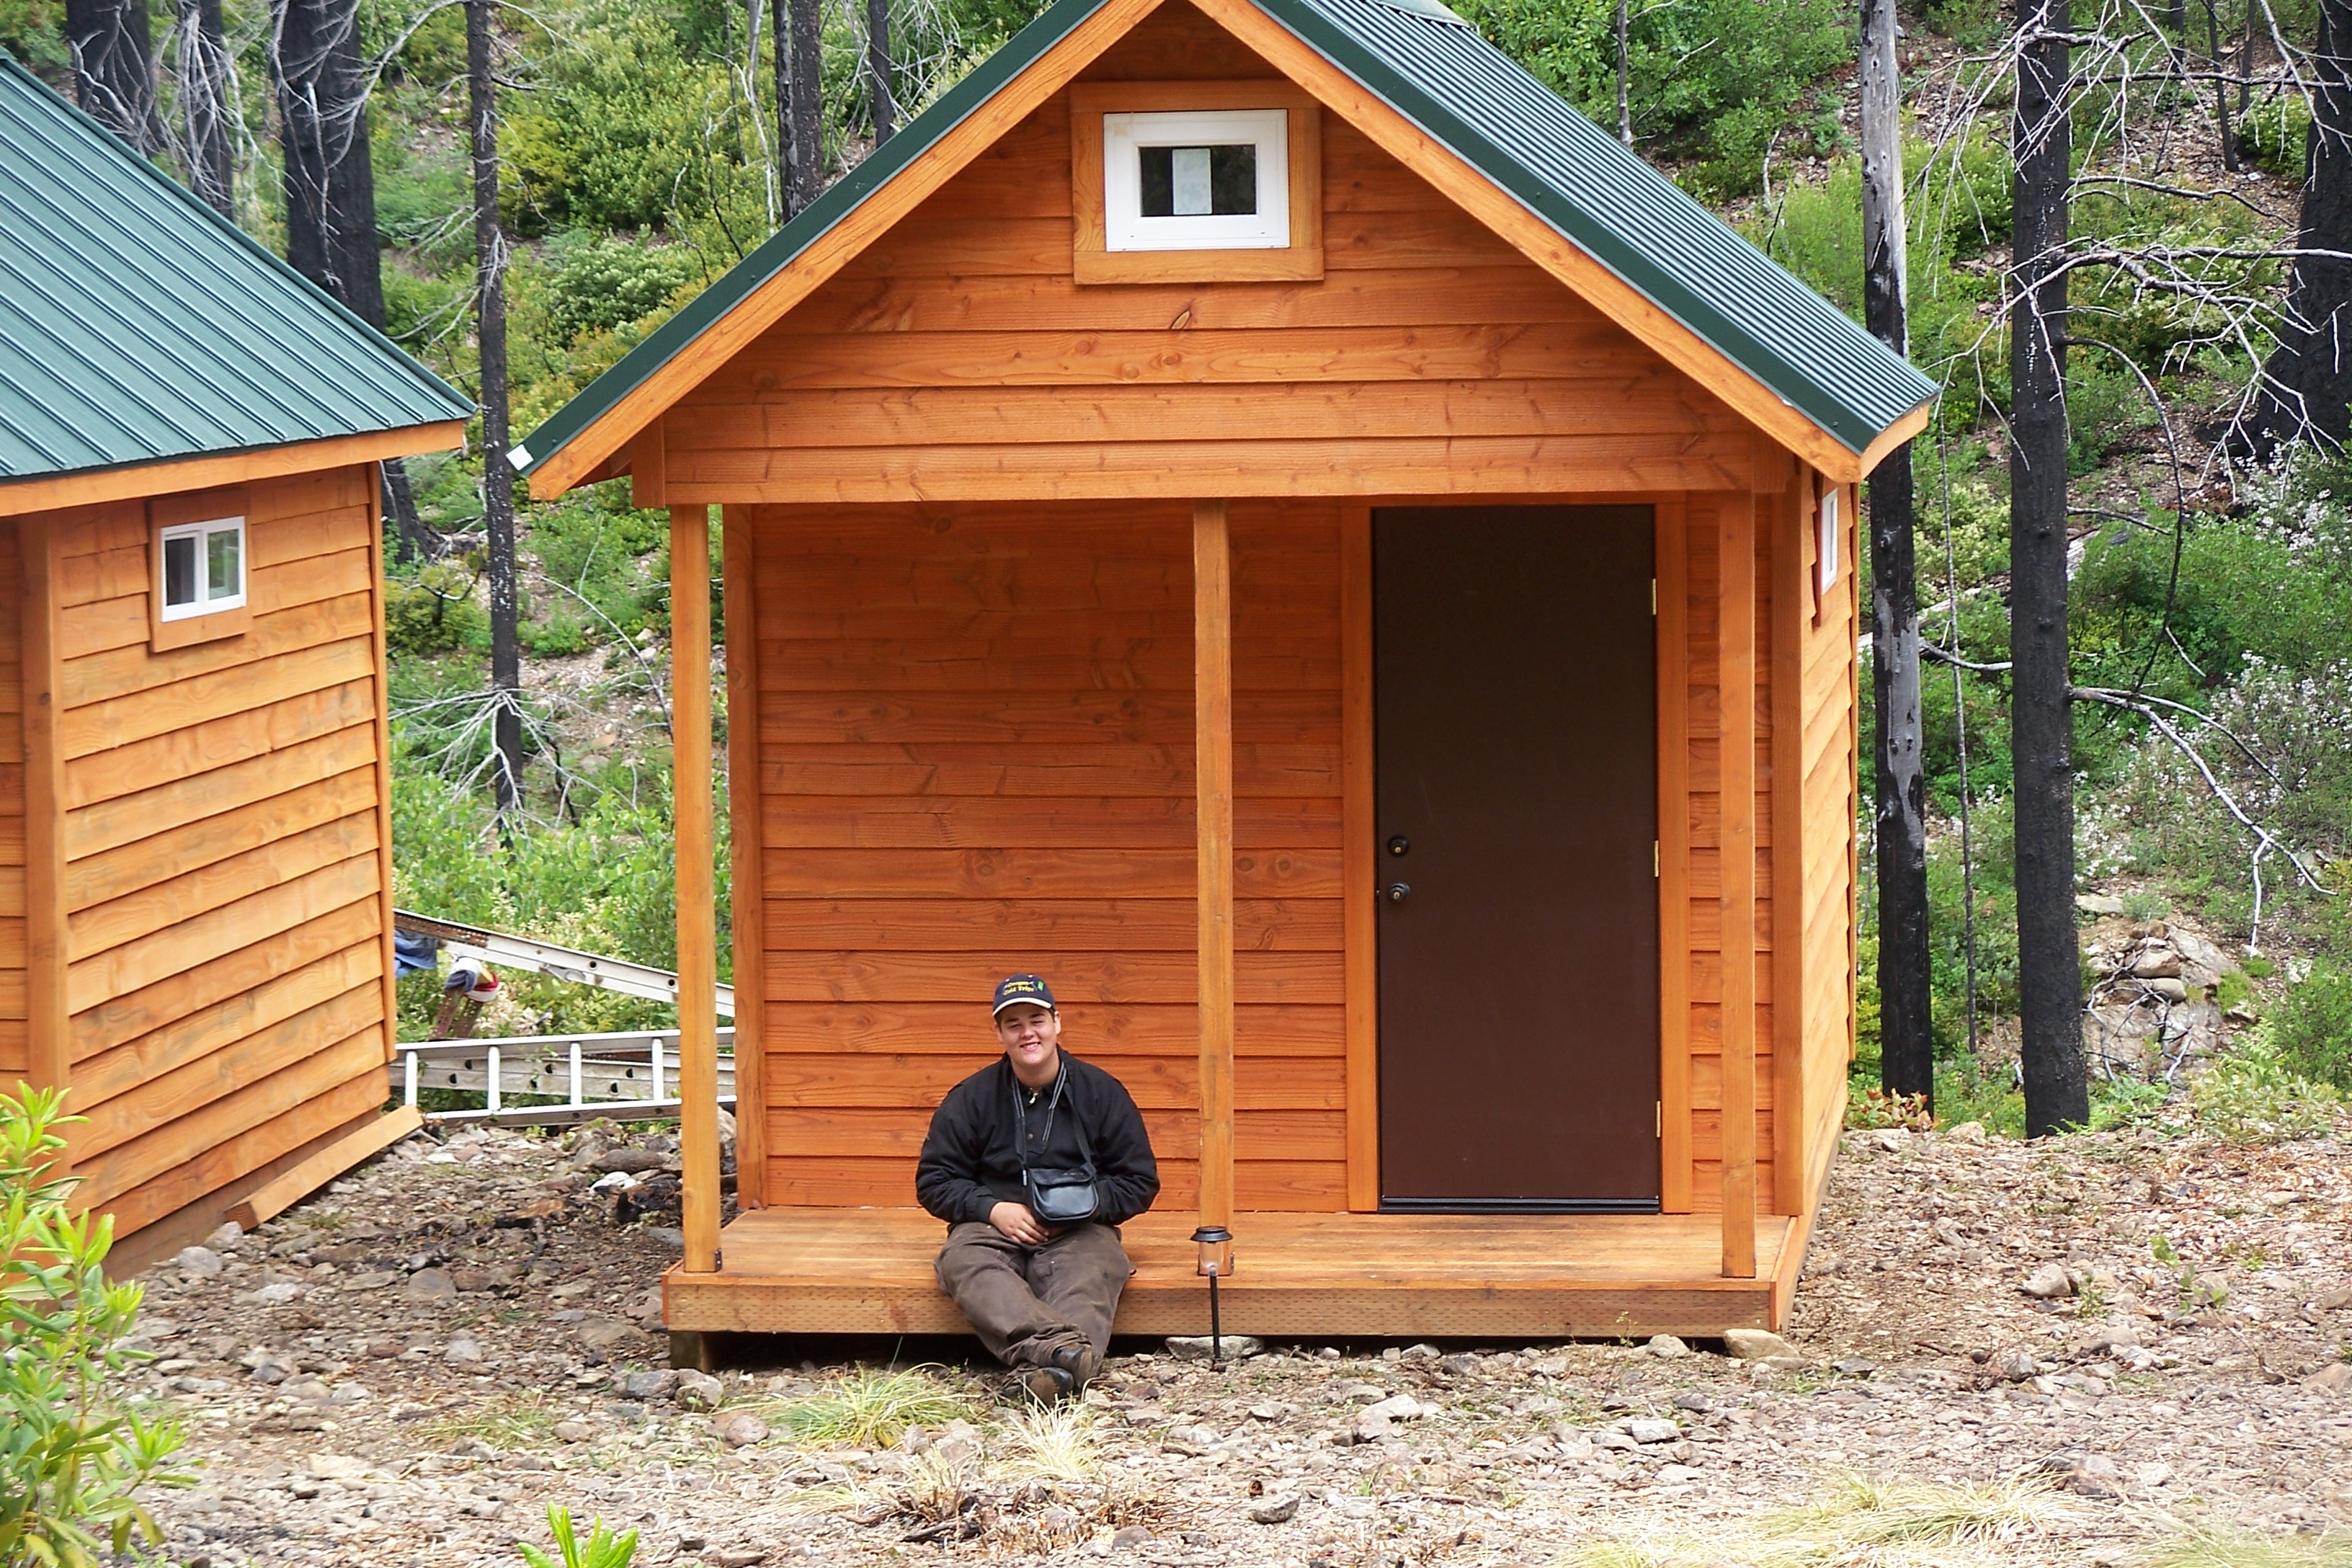 Small hunting cabin kits a frame cabin kits small hunting for Tiny hunting cabin